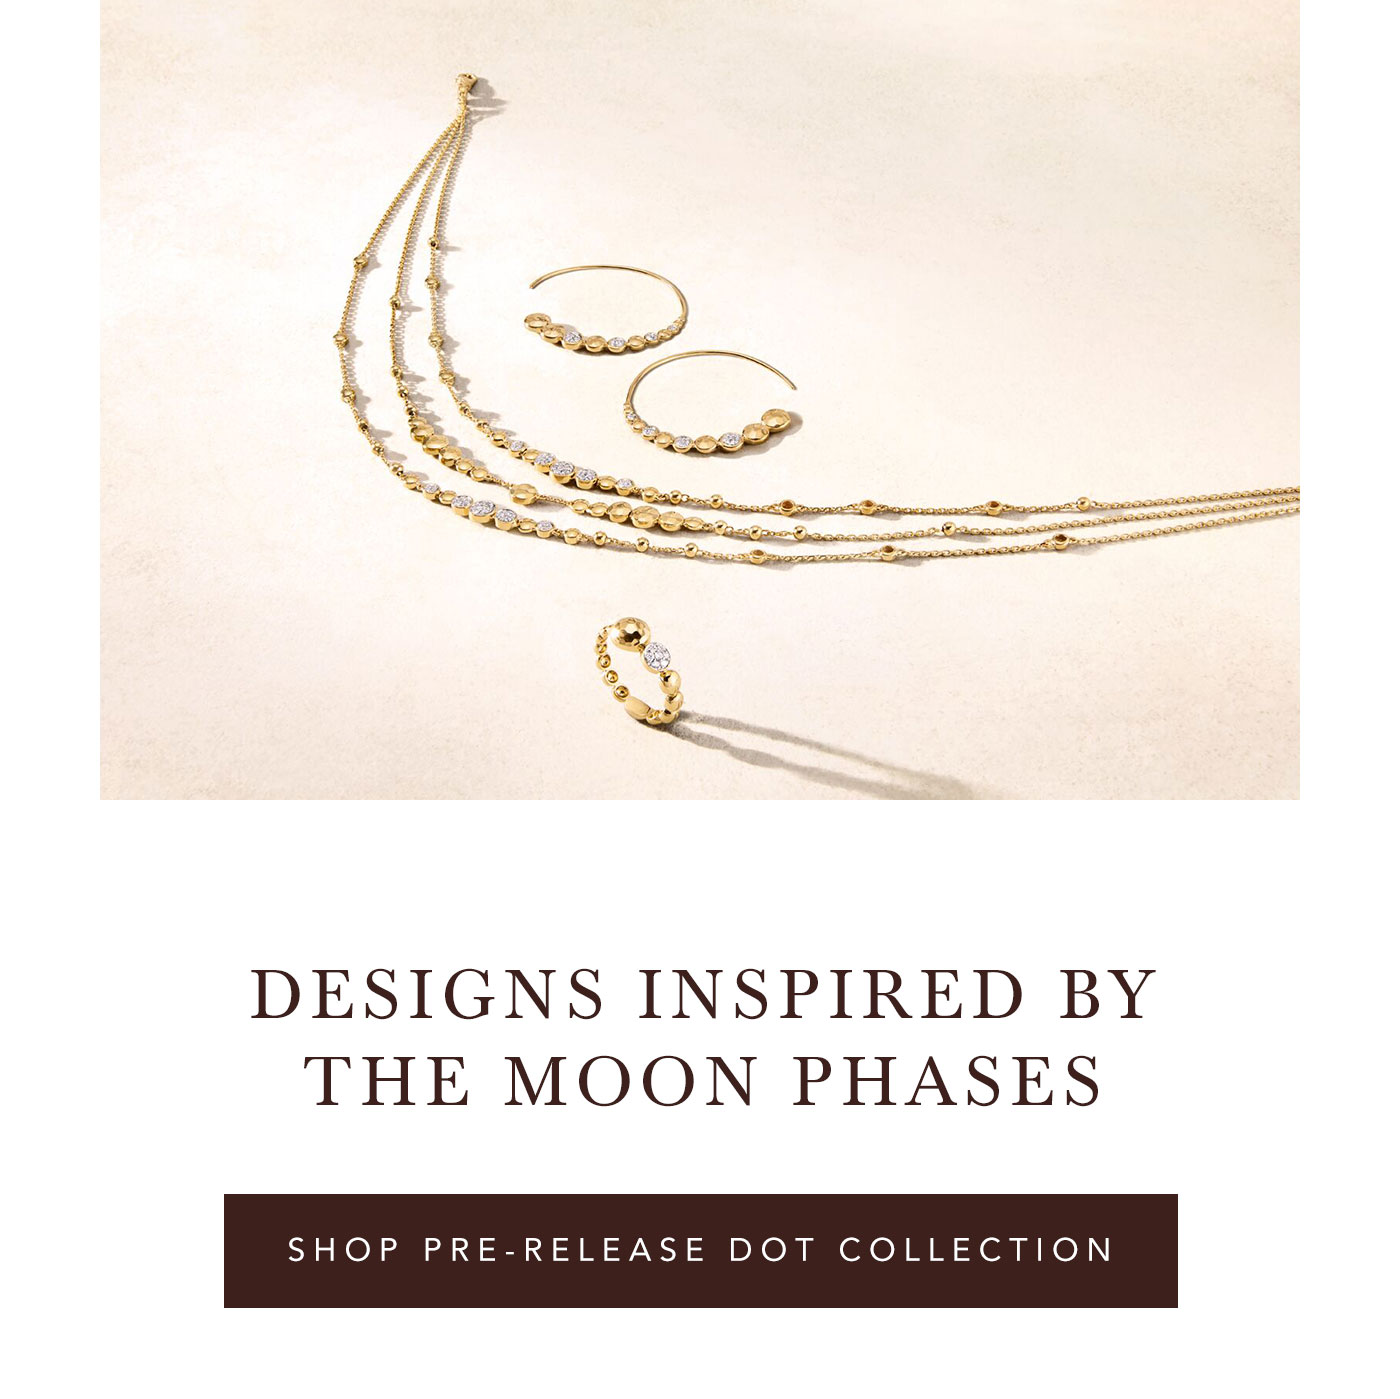 Designs Inspired By The Moon Phases | Shop Pre-Release Dot Collection